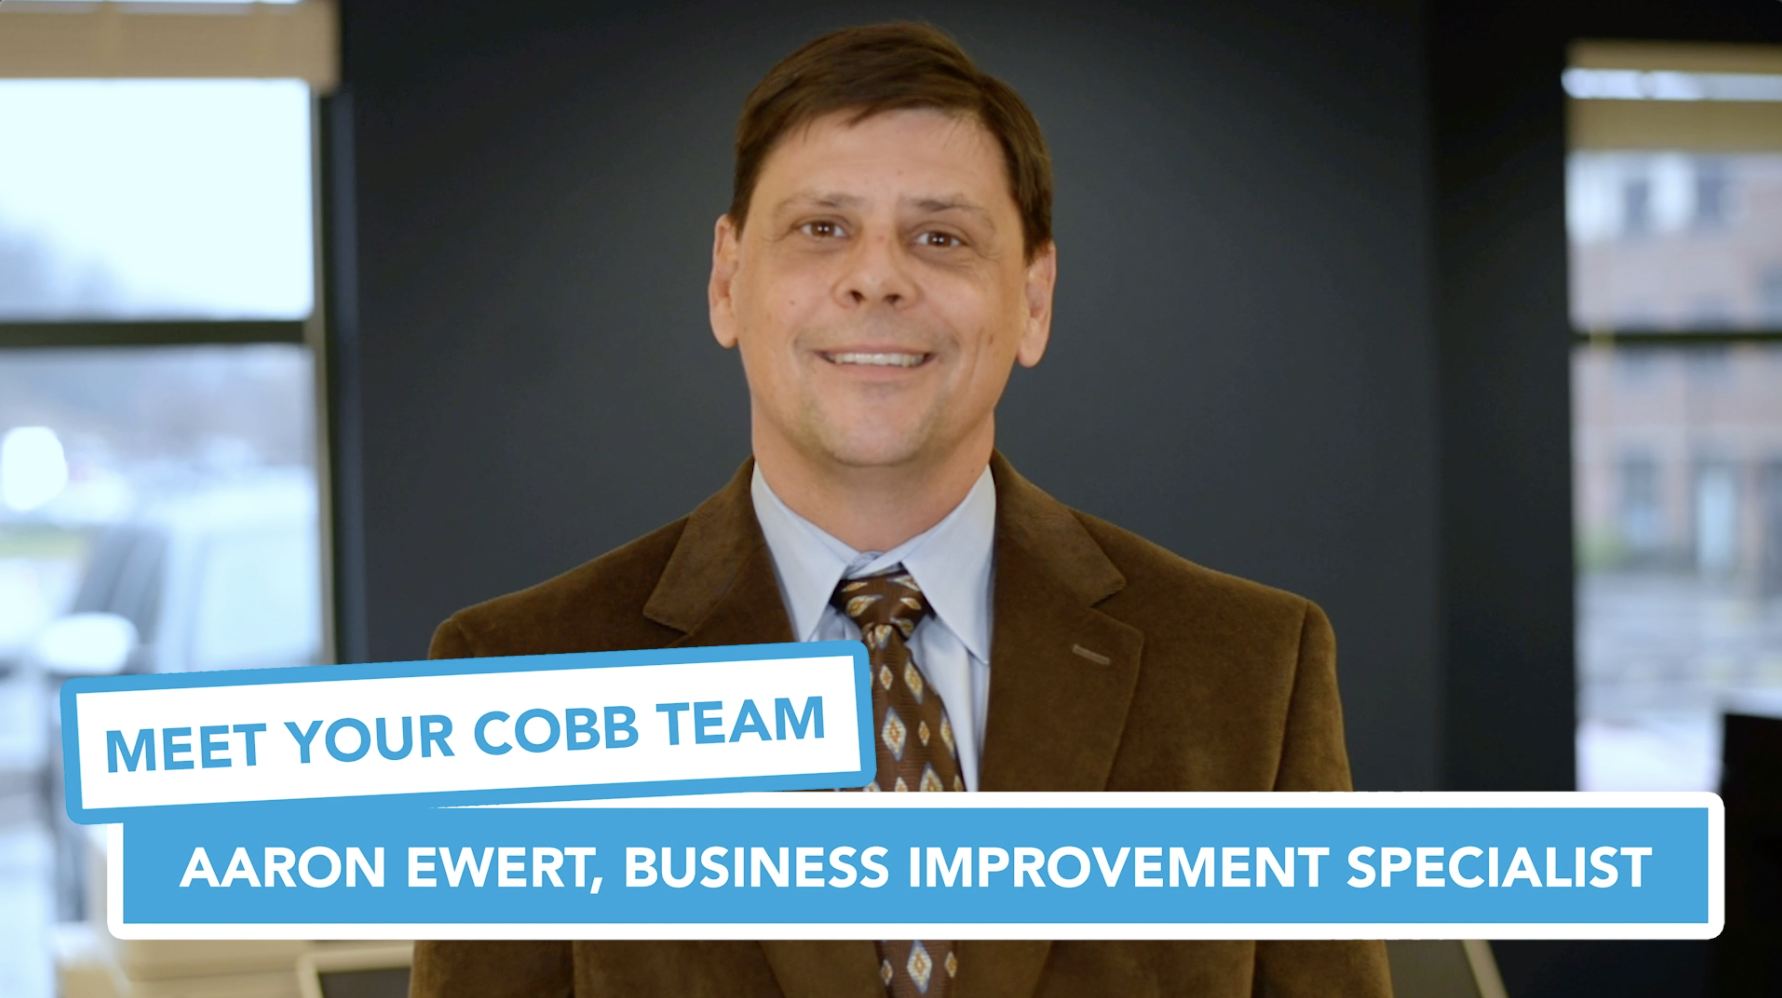 Meet Your Cobb Team: Aaron Ewert, Business Improvement Specialist